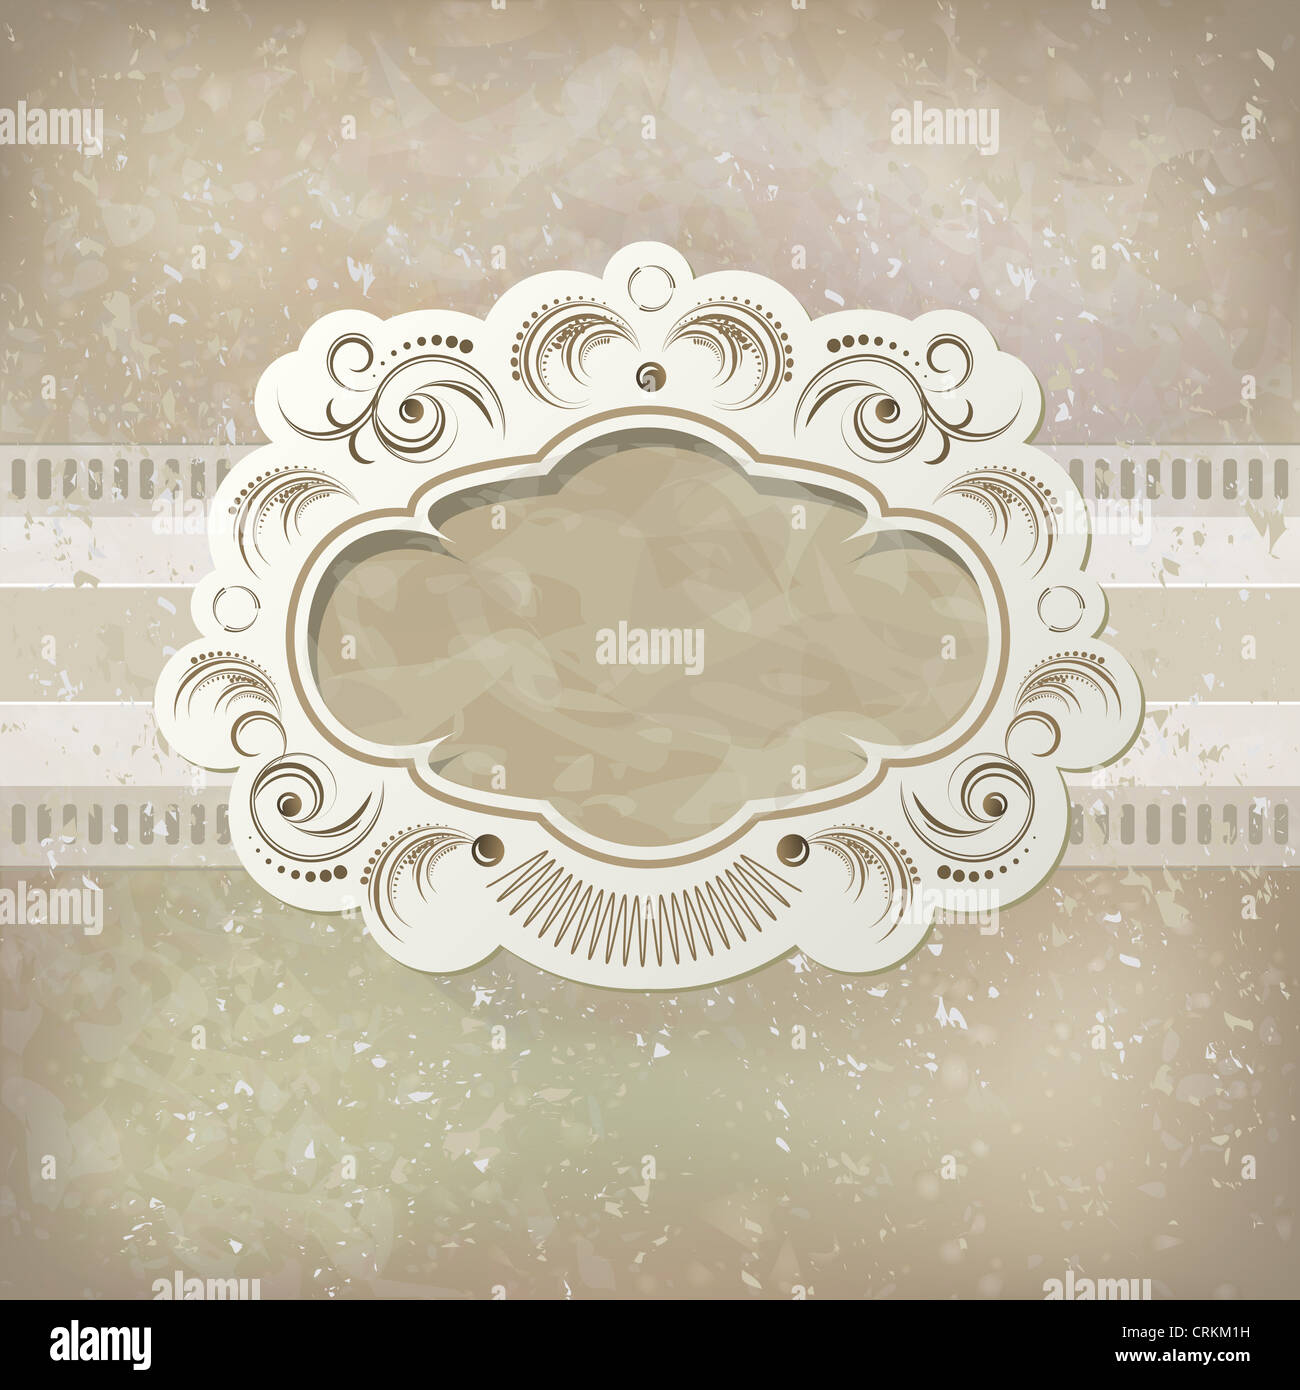 Vintage background with scrapbook frame for invitation, announcement or menu. Graphic style, sepia tones - Stock Image